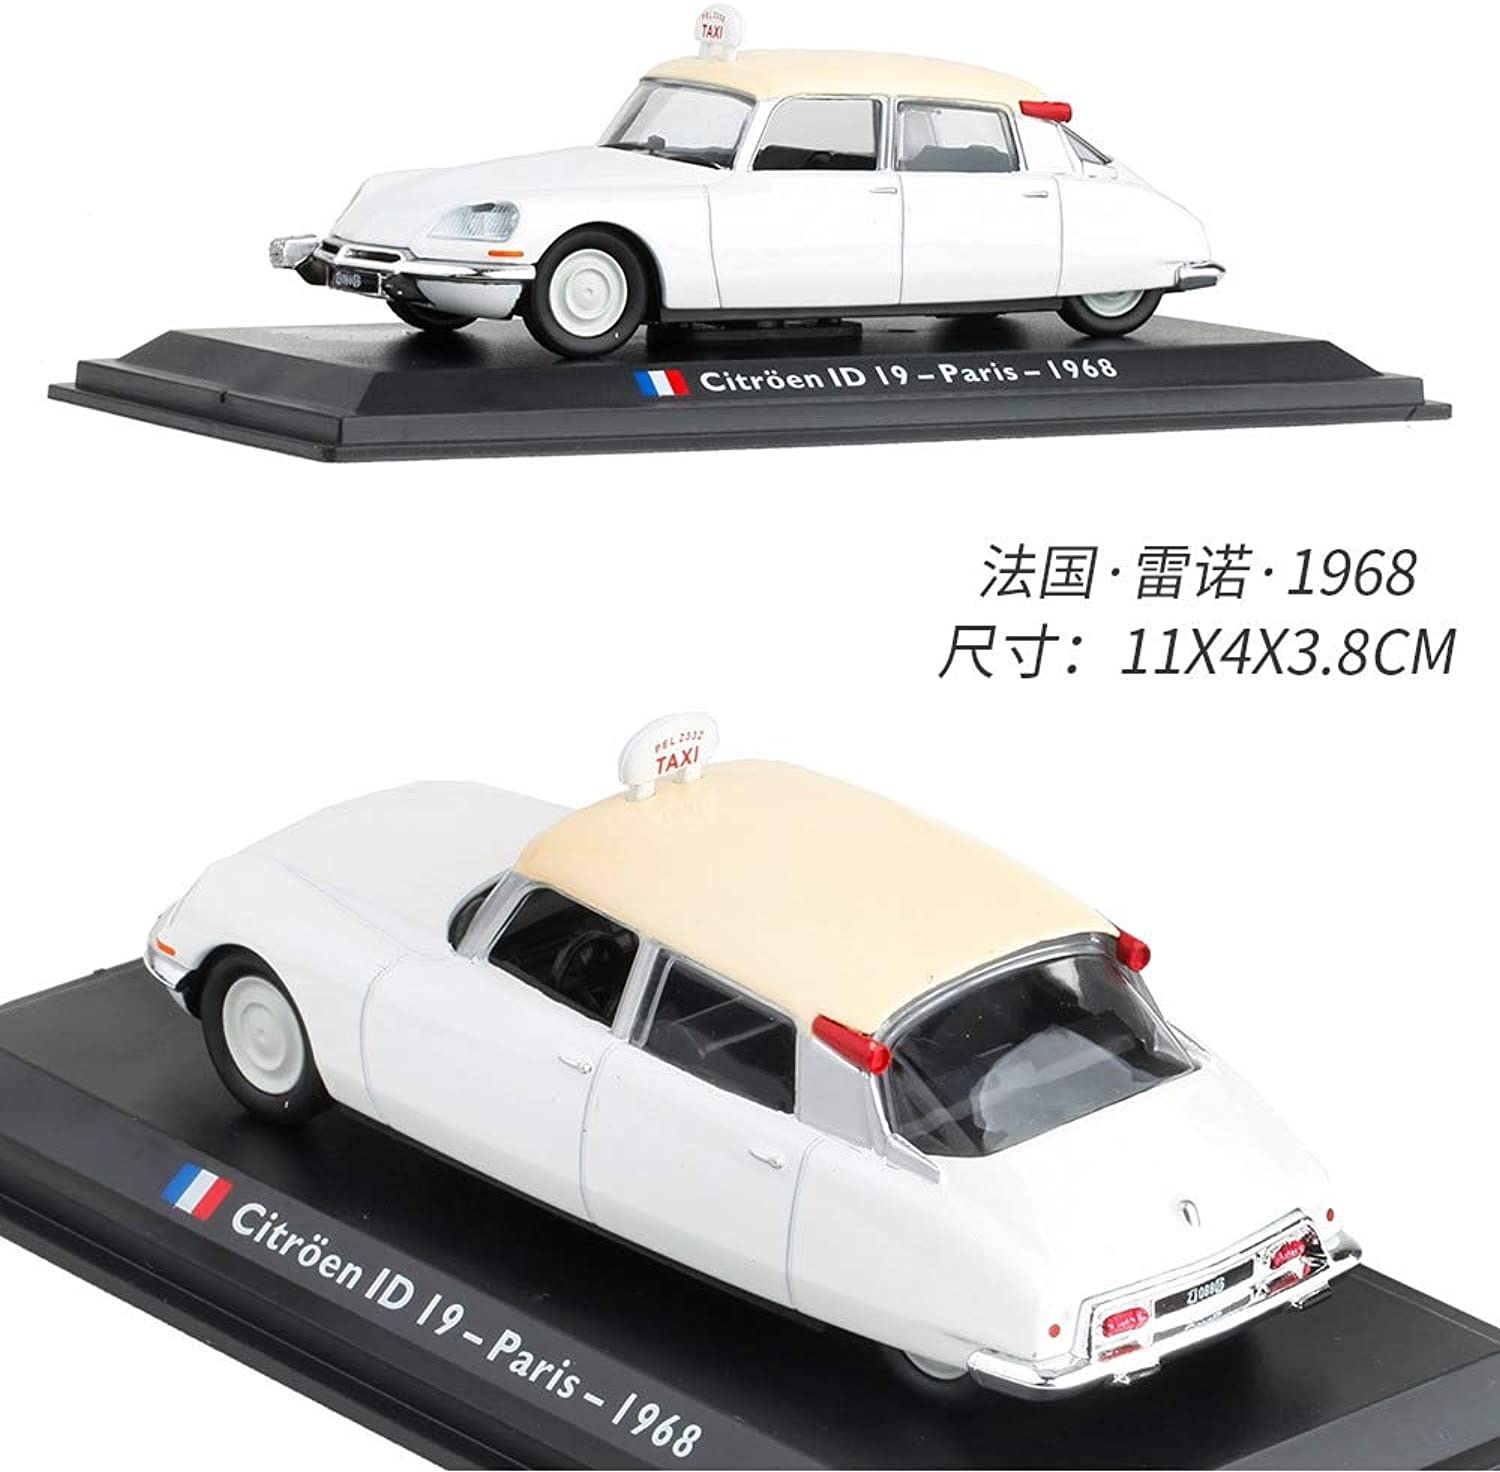 Generic Free Scale 1 43 Allloy Retro Taxi Collection Model Cars World's Ford Renault Fiat Classic Taxi . 11